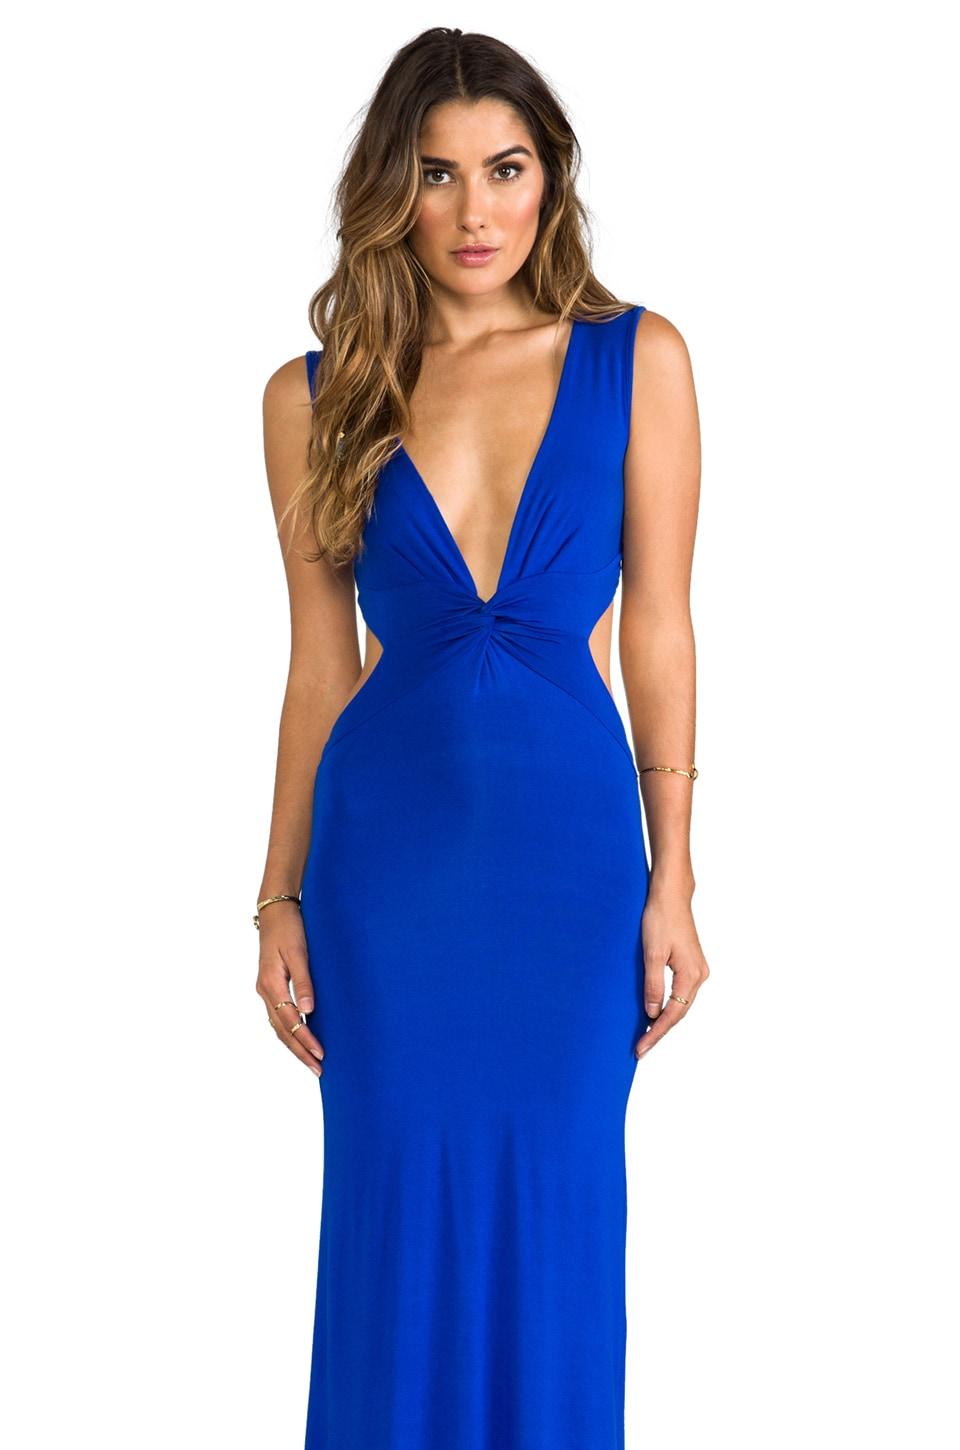 Blue Life Sleeveless Long BB Dress in Cobalt